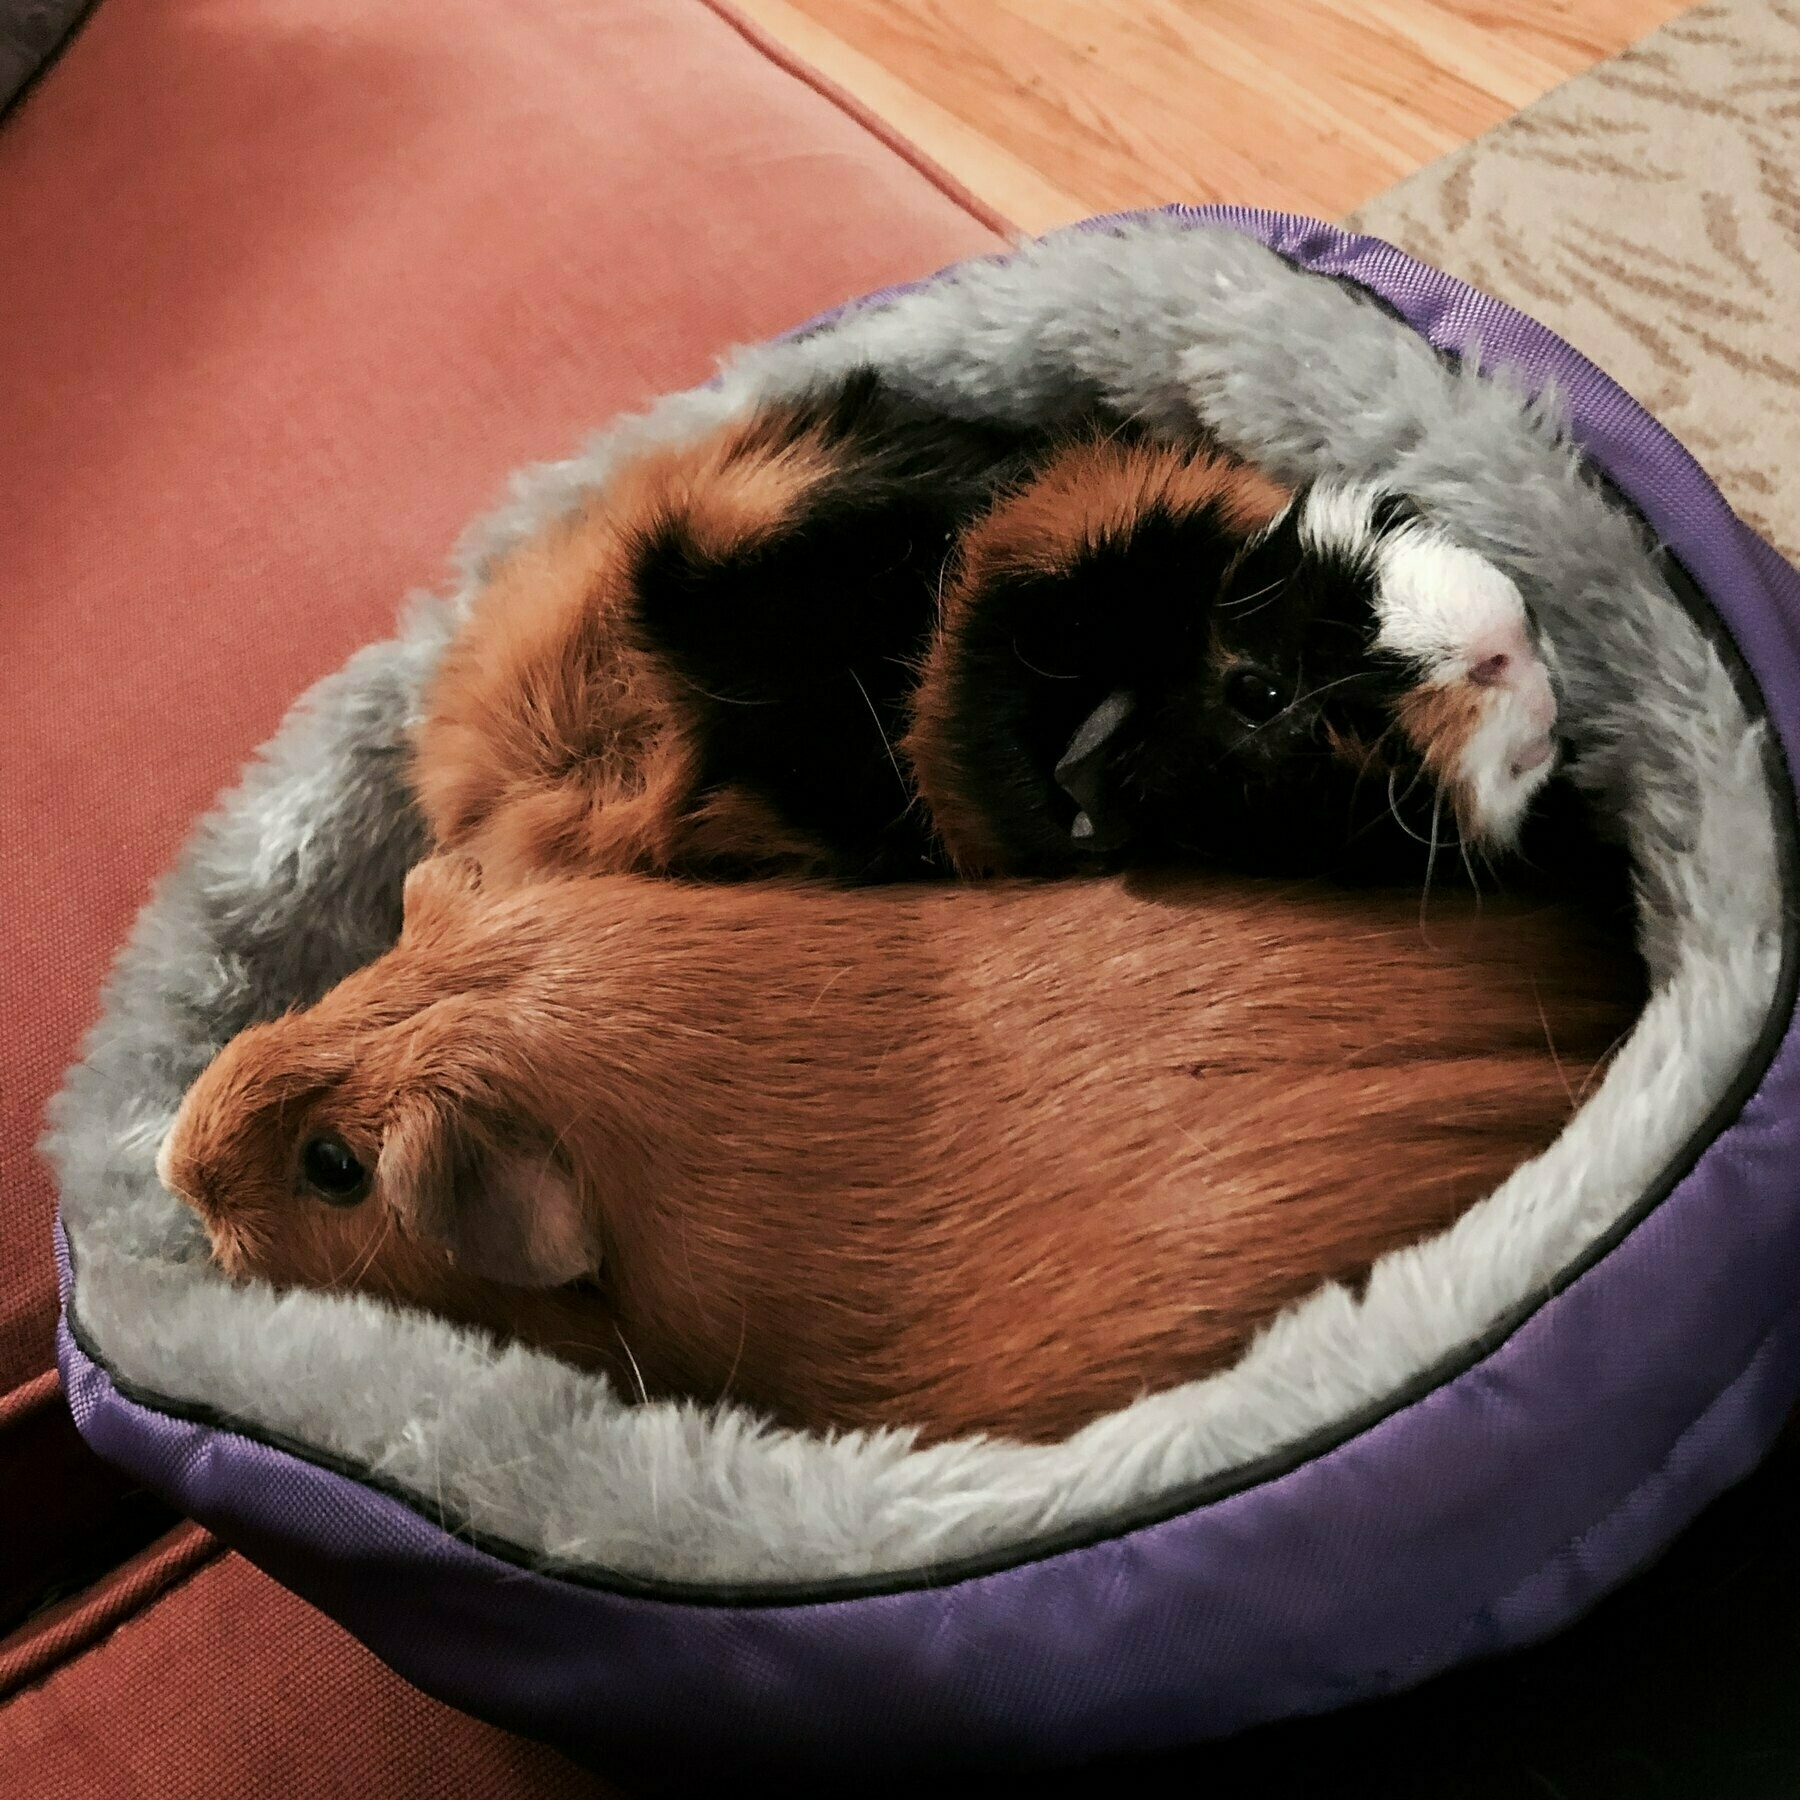 two guinea pigs in a plush bed that is meant for one.